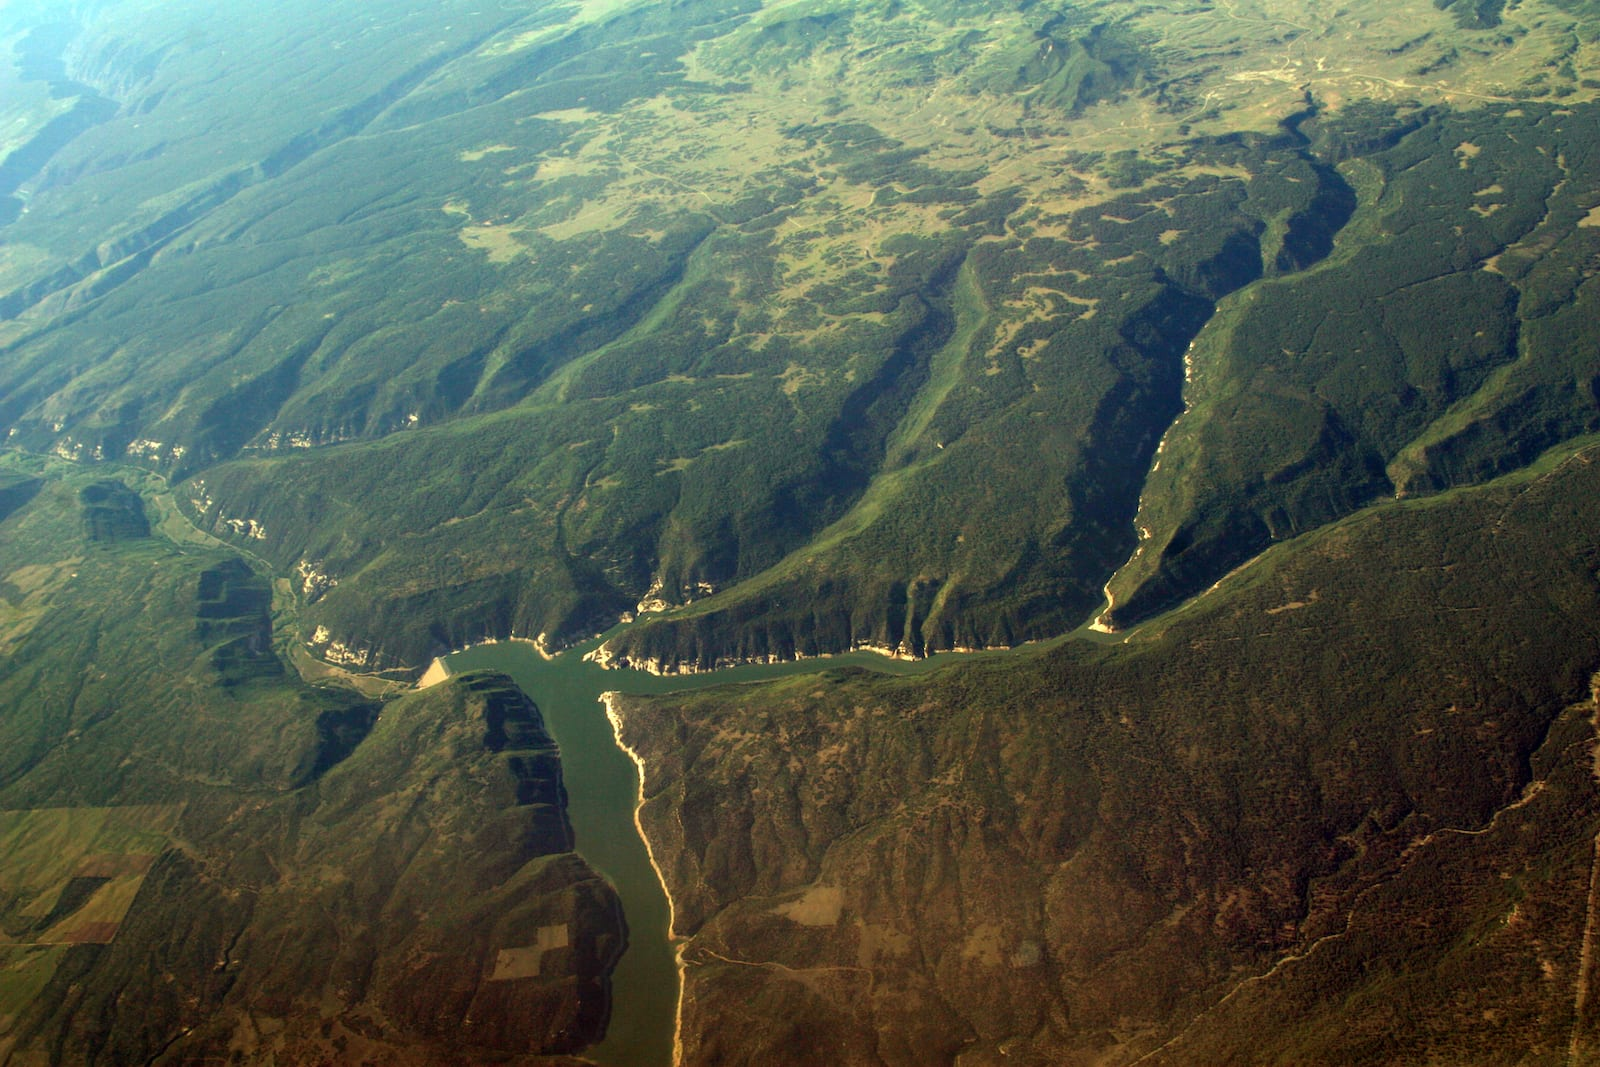 McPhee Reservoir Summer Aerial View Dolores CO